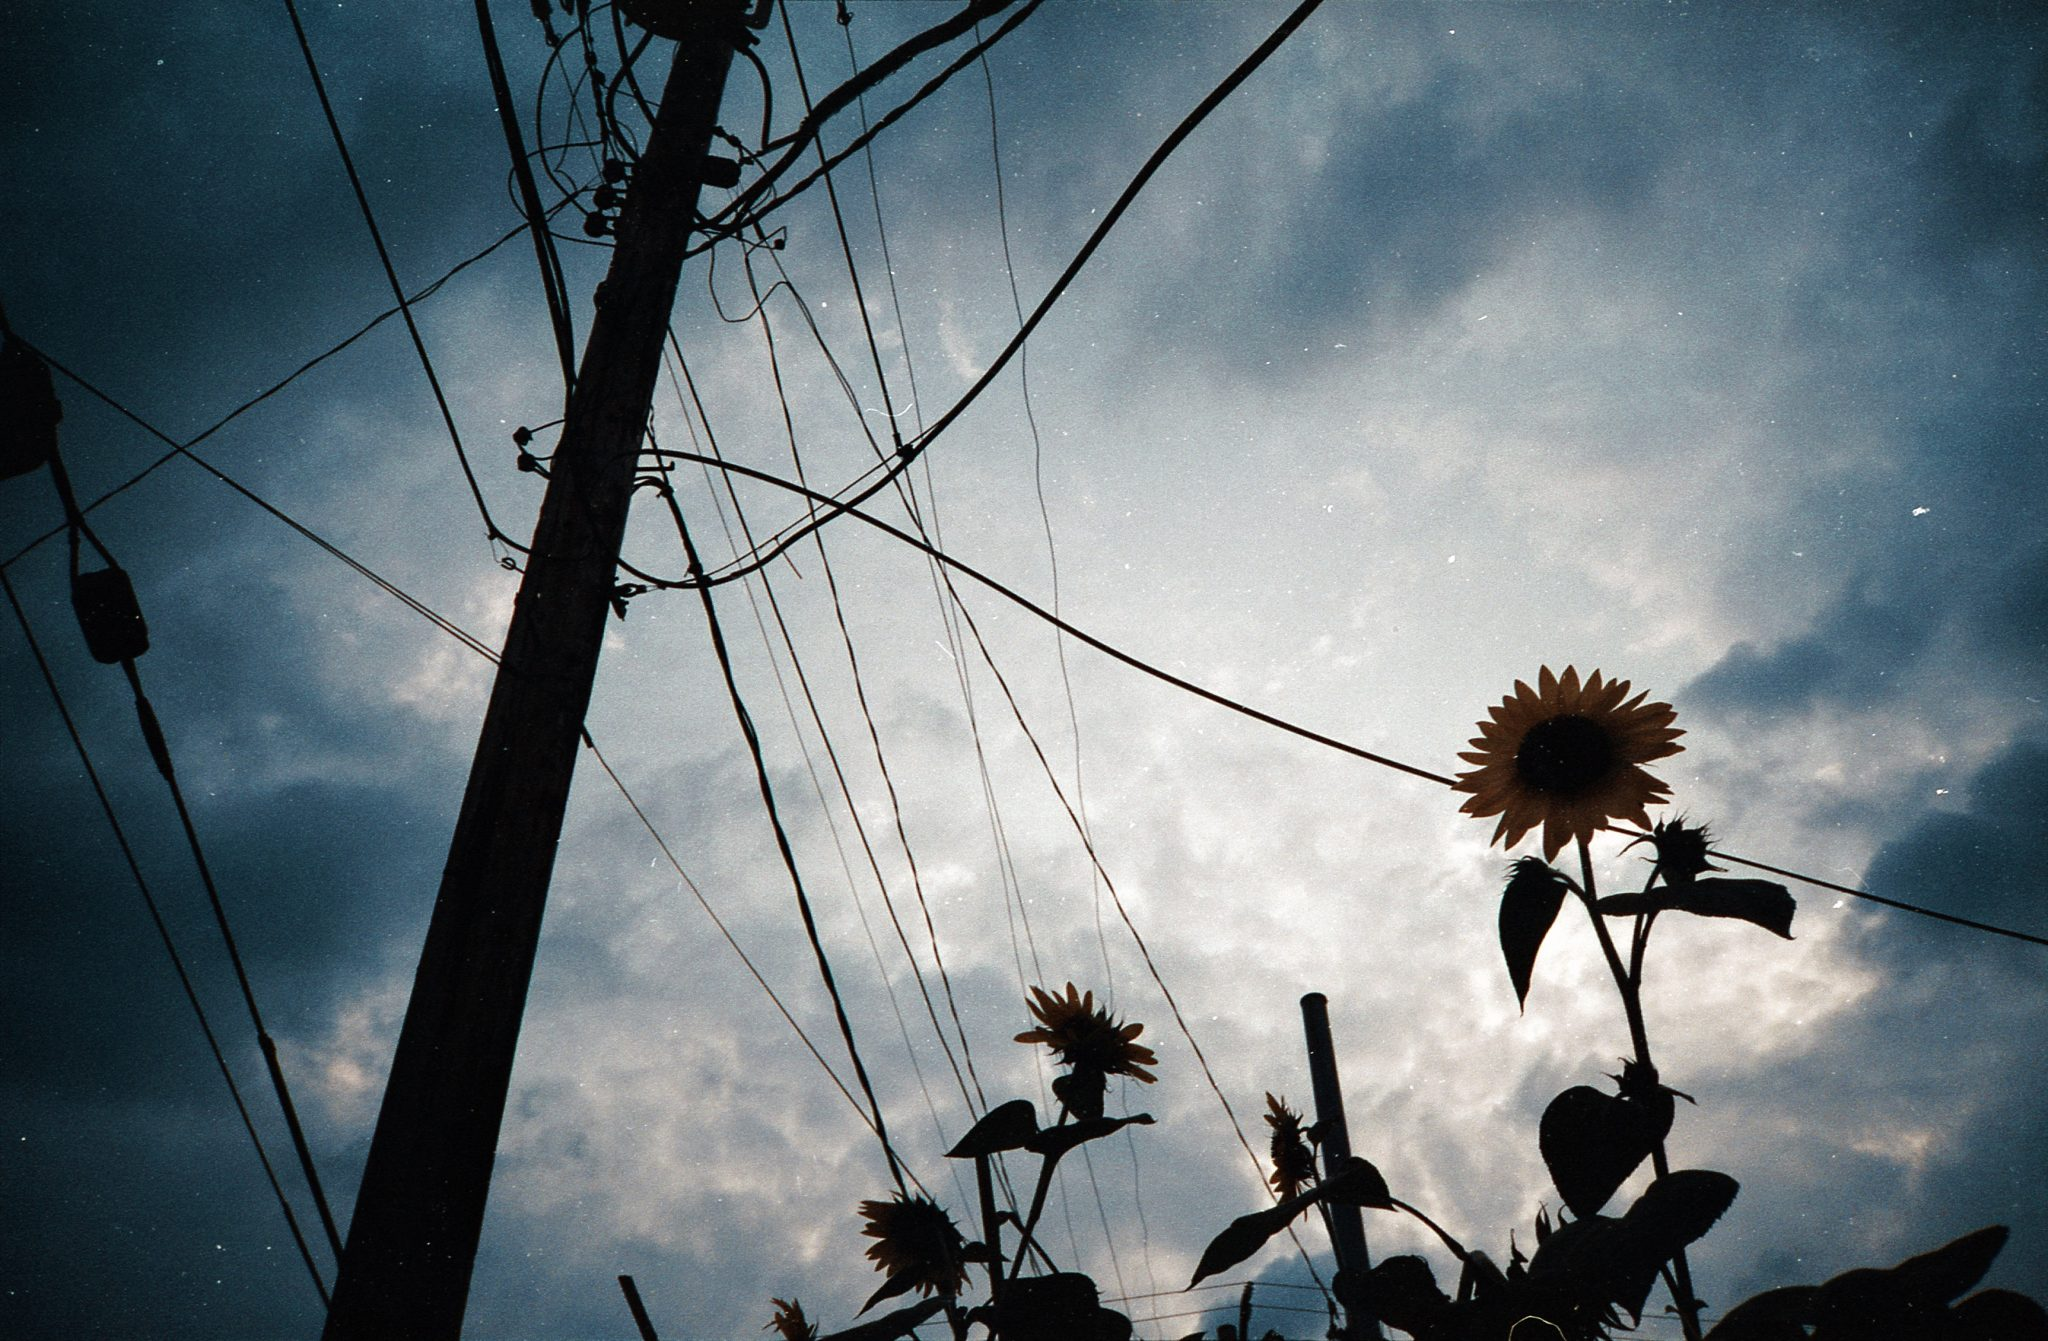 The Yashica Ninja Star II AF-J2 photo of clouds and power lines